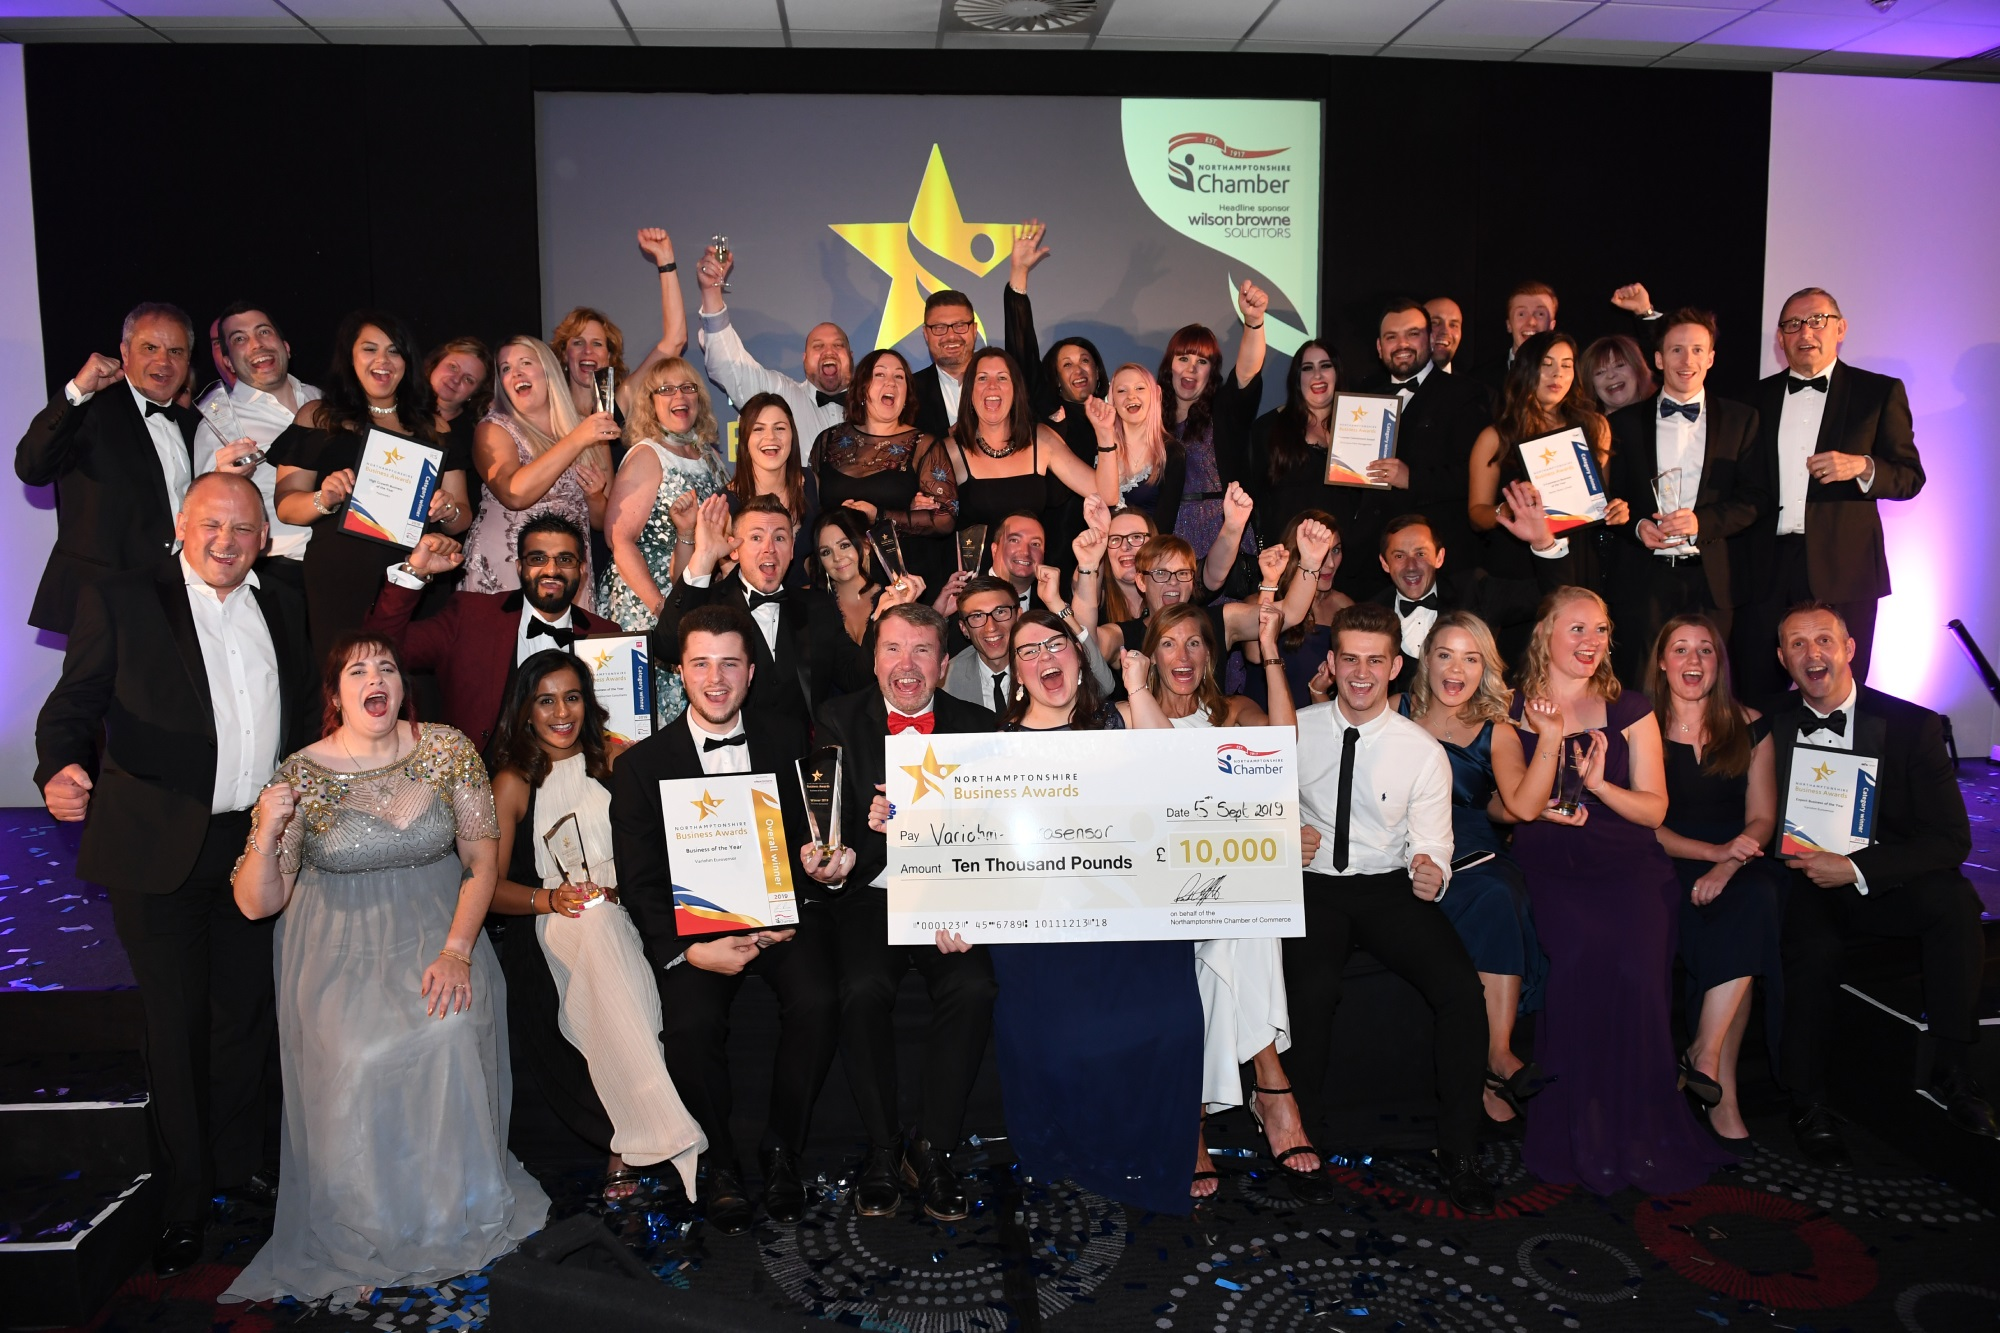 2019 Chamber Business Awards regional wins for Northamptonshire firms